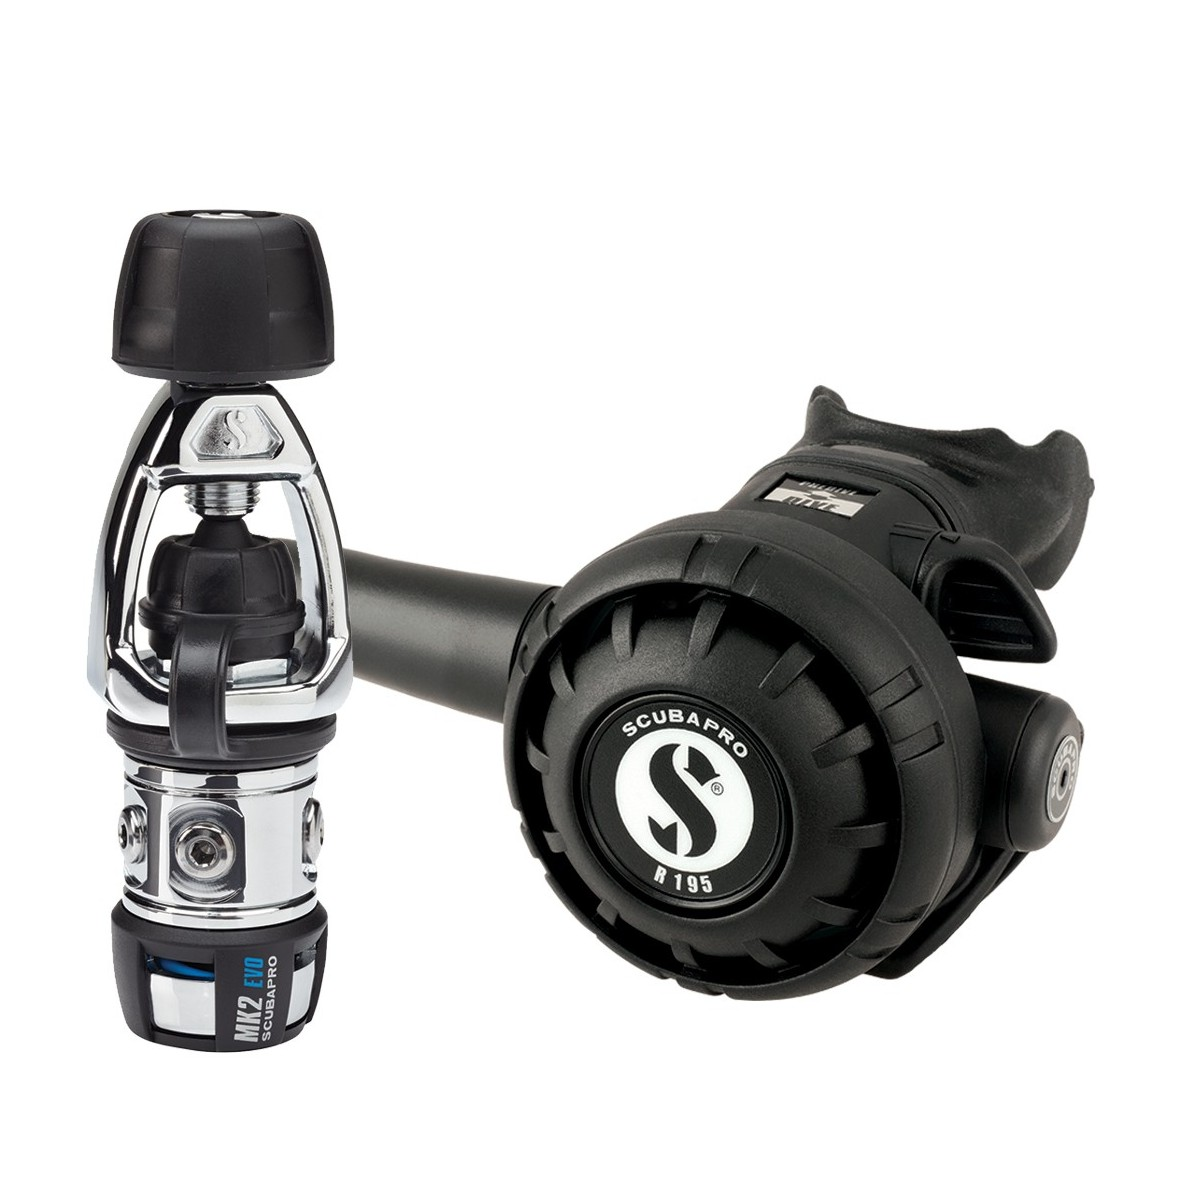 ScubaPro MK2+/R195 Balanced Scuba Diving Regulator